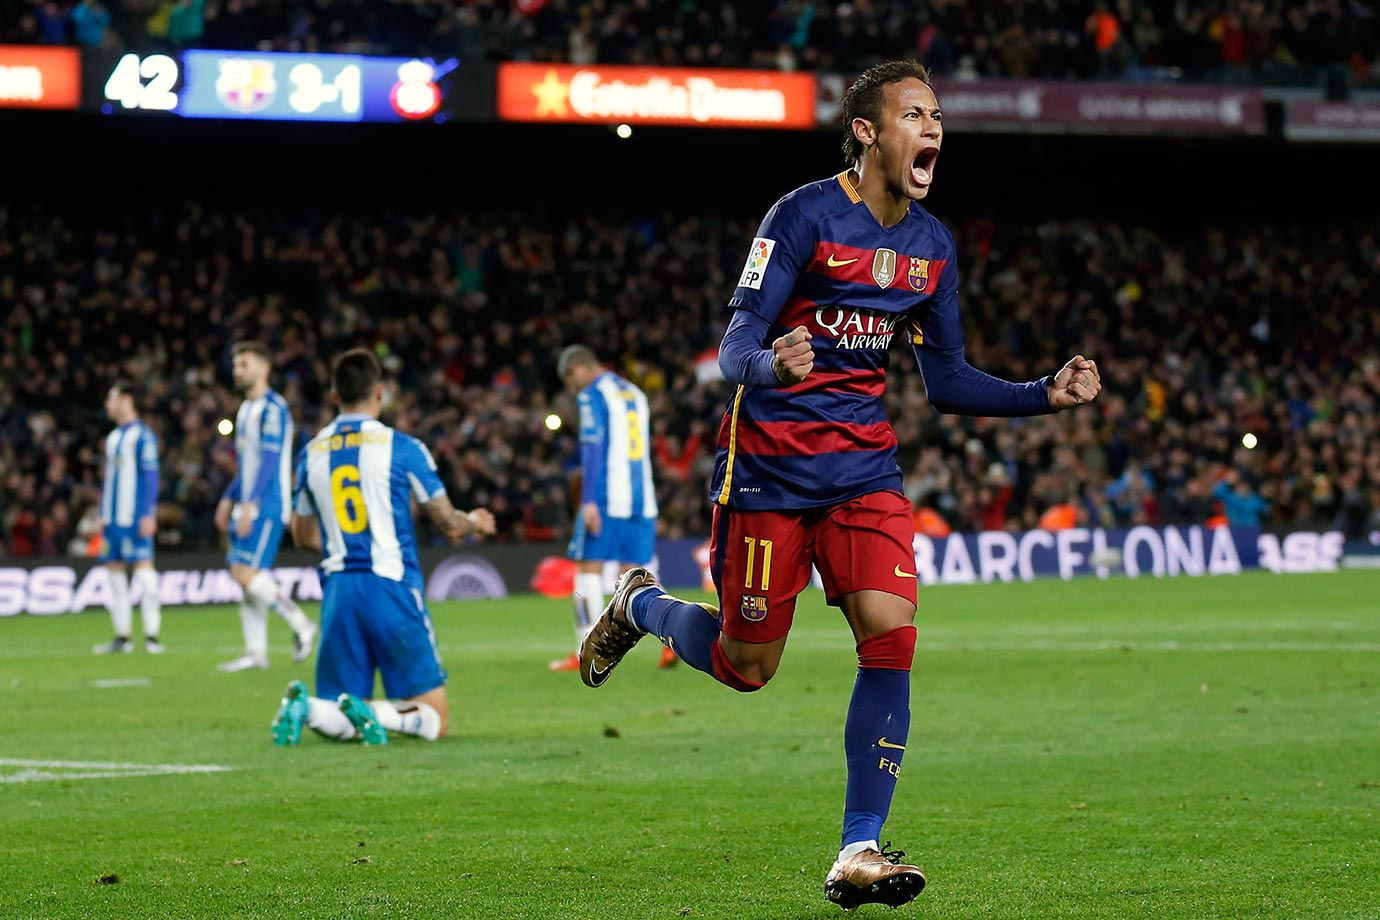 Neymar celebrates scoring a goal during Barcelona's Copa del Rey match against Espanyol on Jan. 6, 2016 at Camp Nou in Barcelona, Spain.